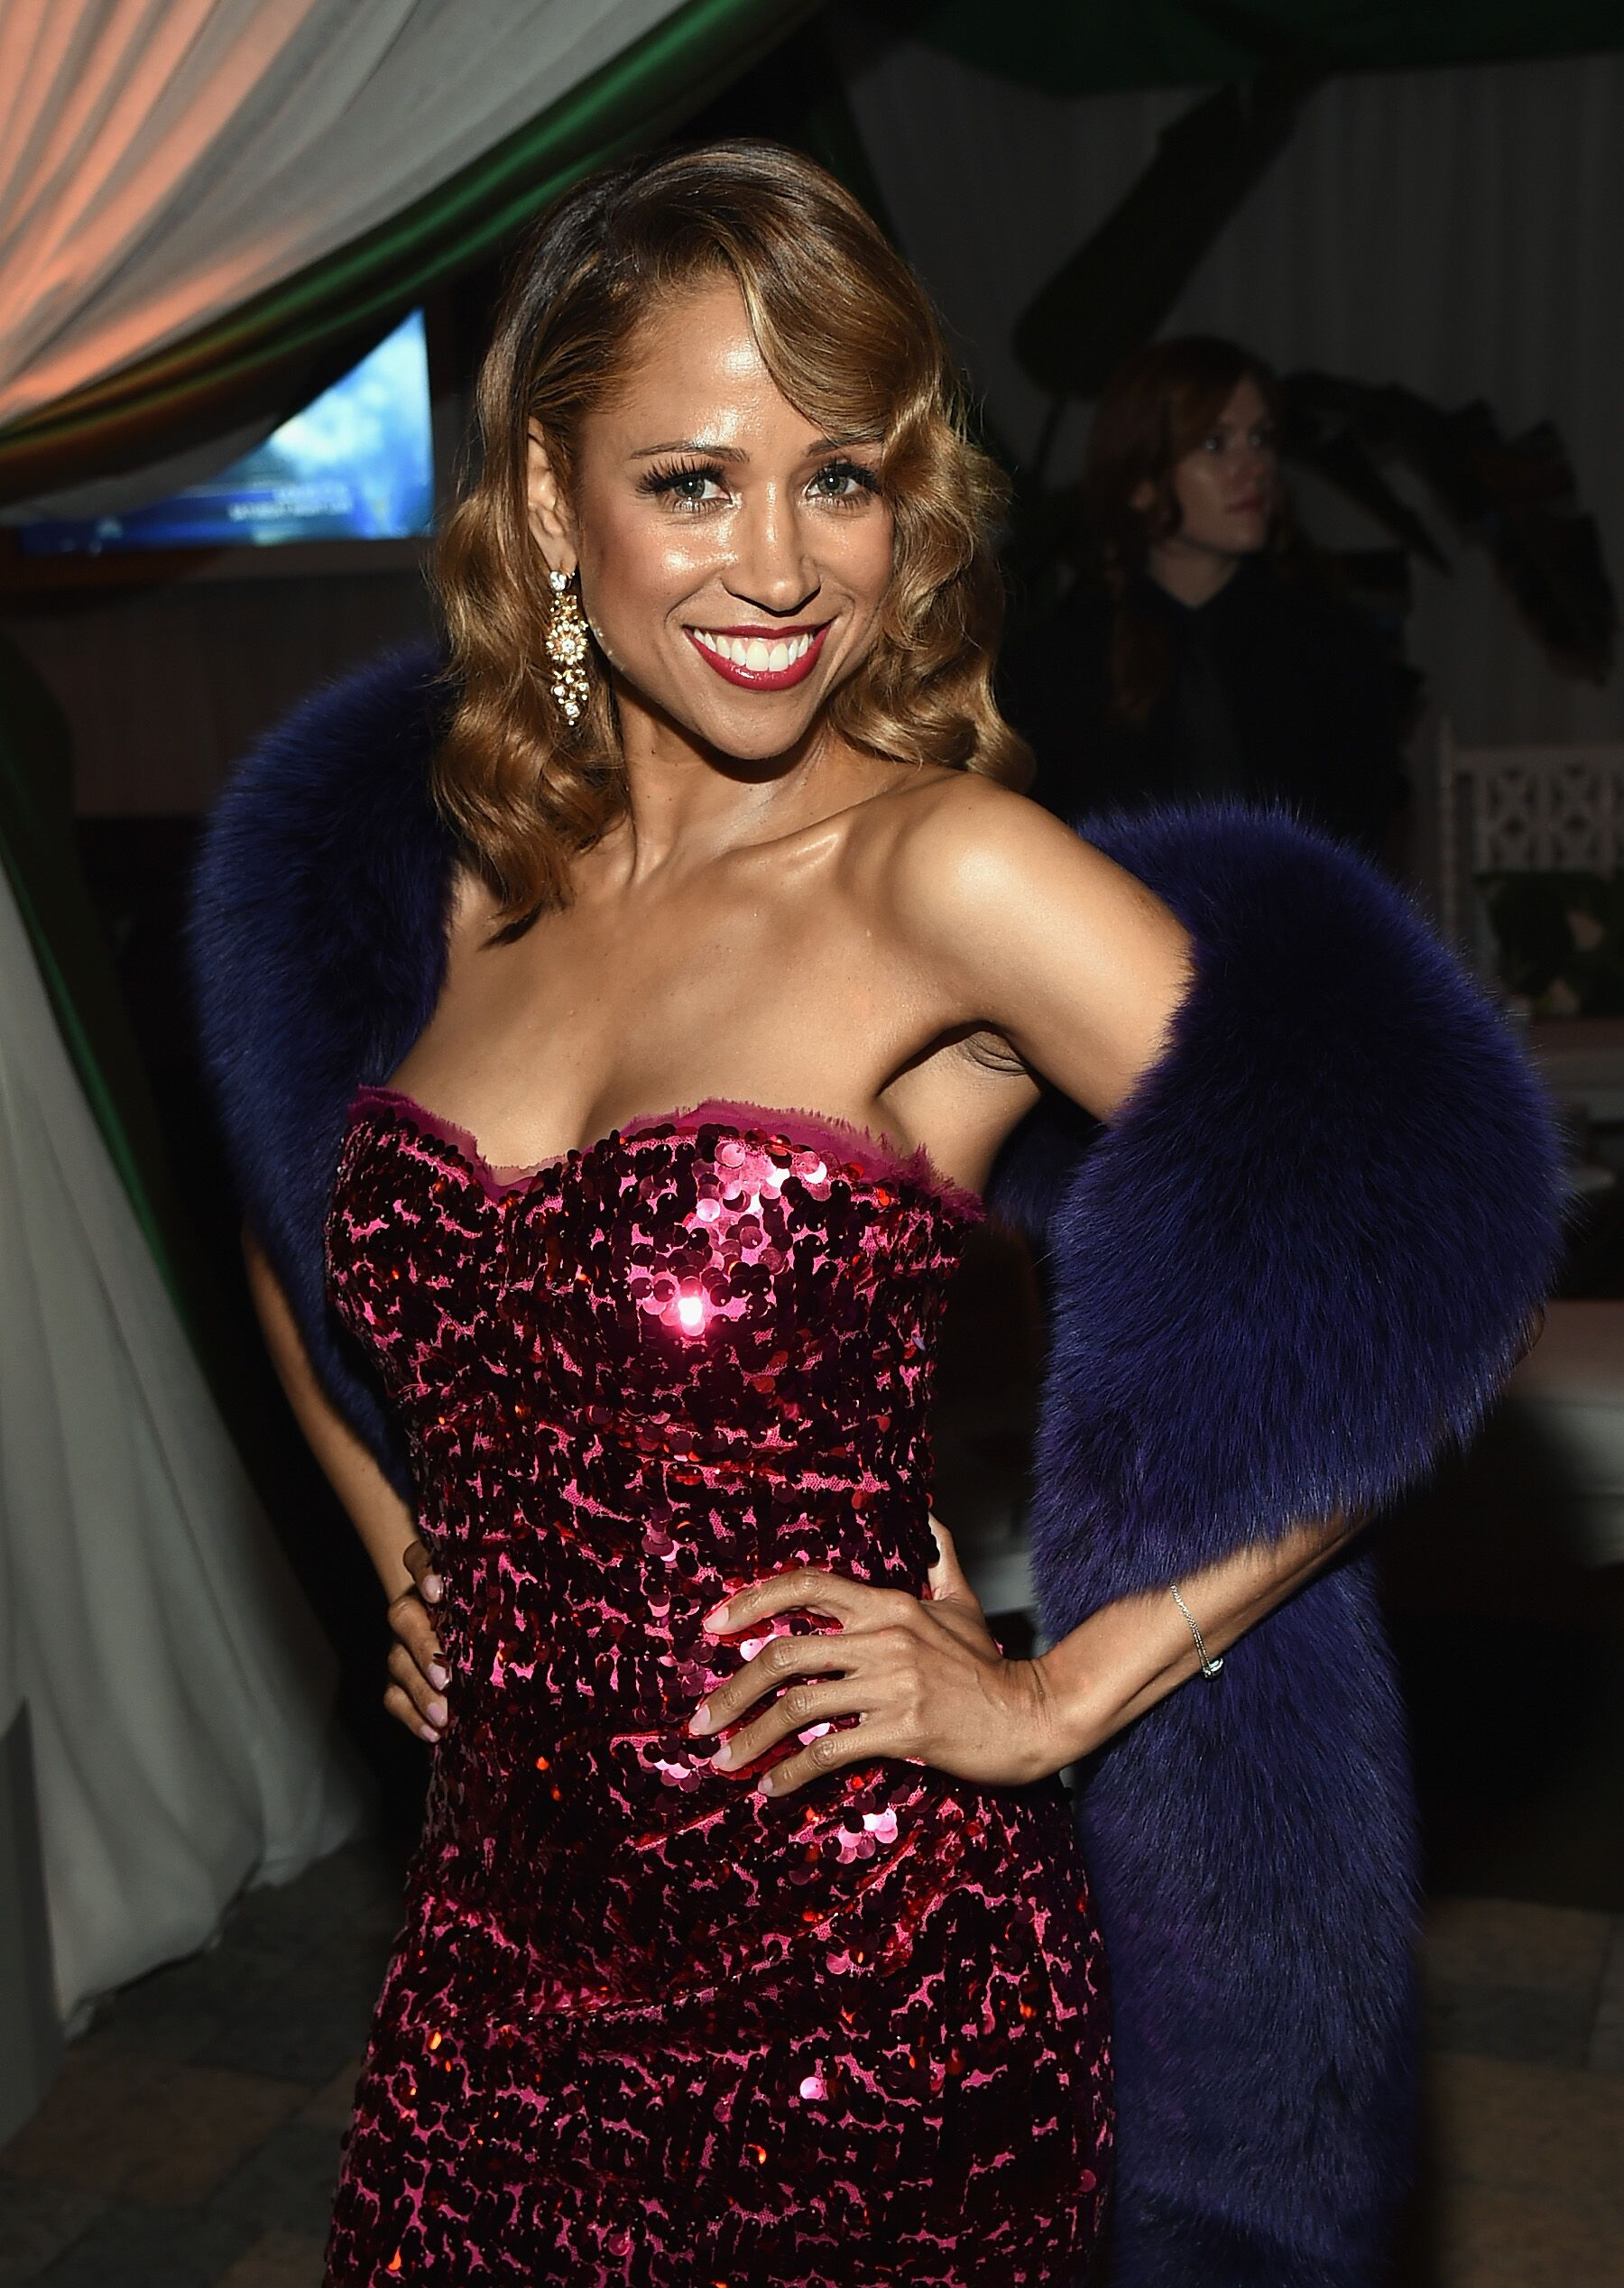 """Clueless"" actress Stacey Dash during a formal event 